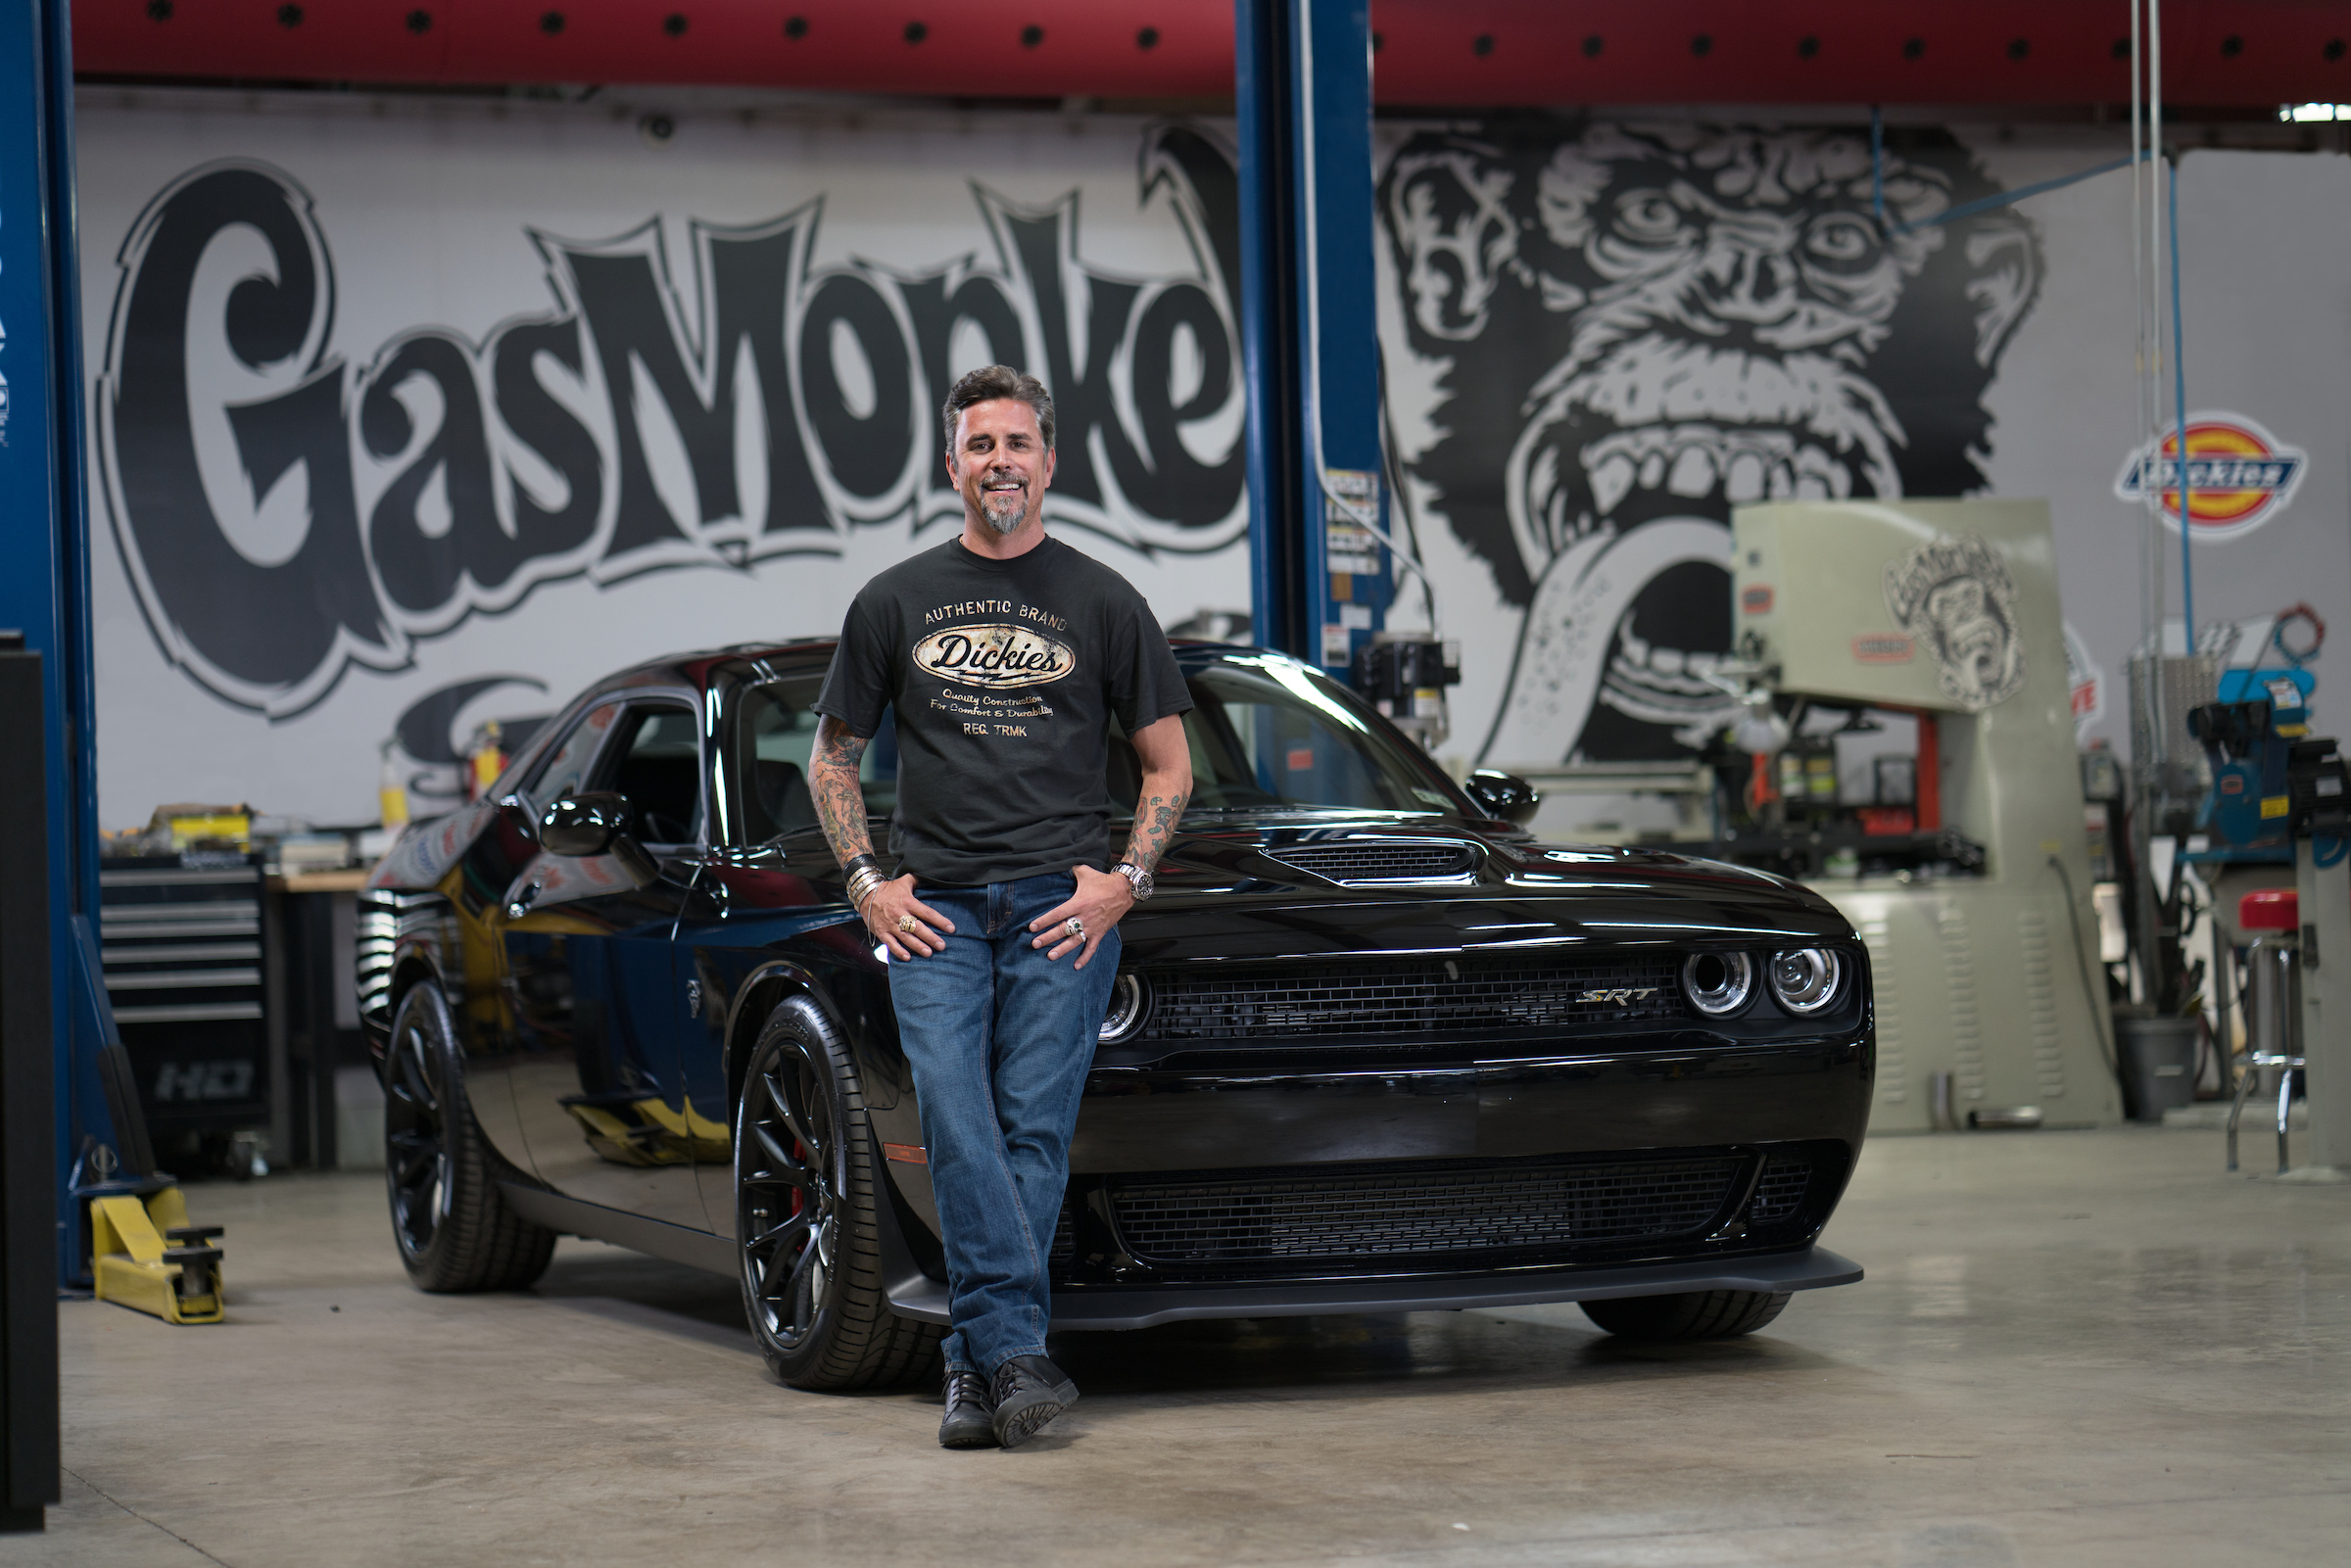 Gas Monkey Racing Clothing Store